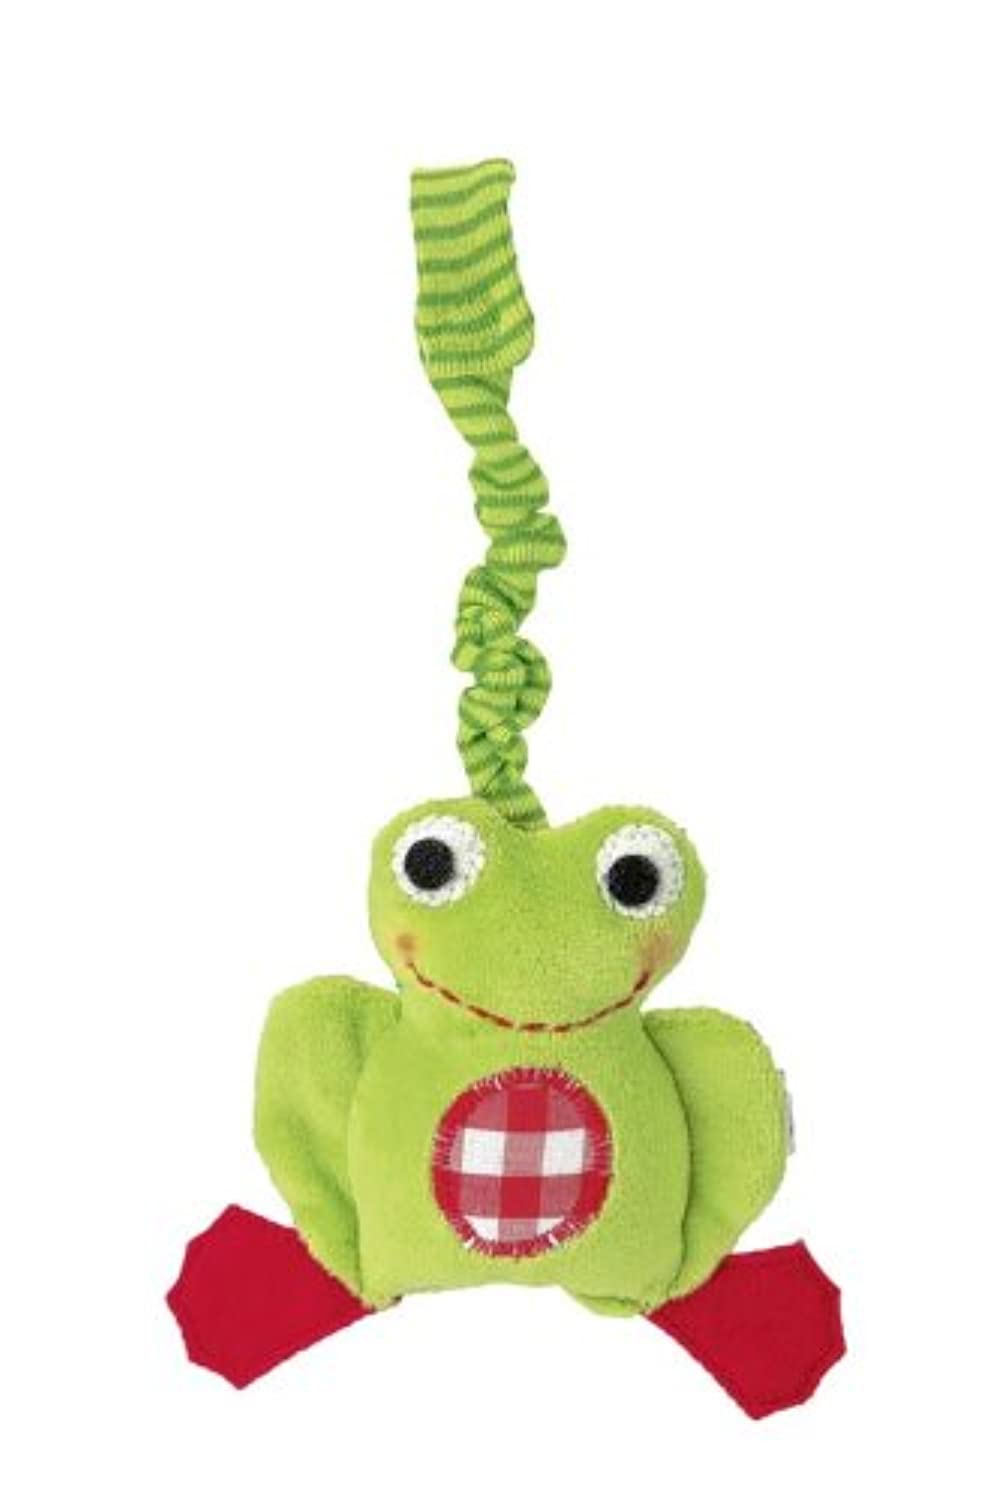 Kathe Kruse - Frog Chopin Stuffed Rattle by K?the Kruse